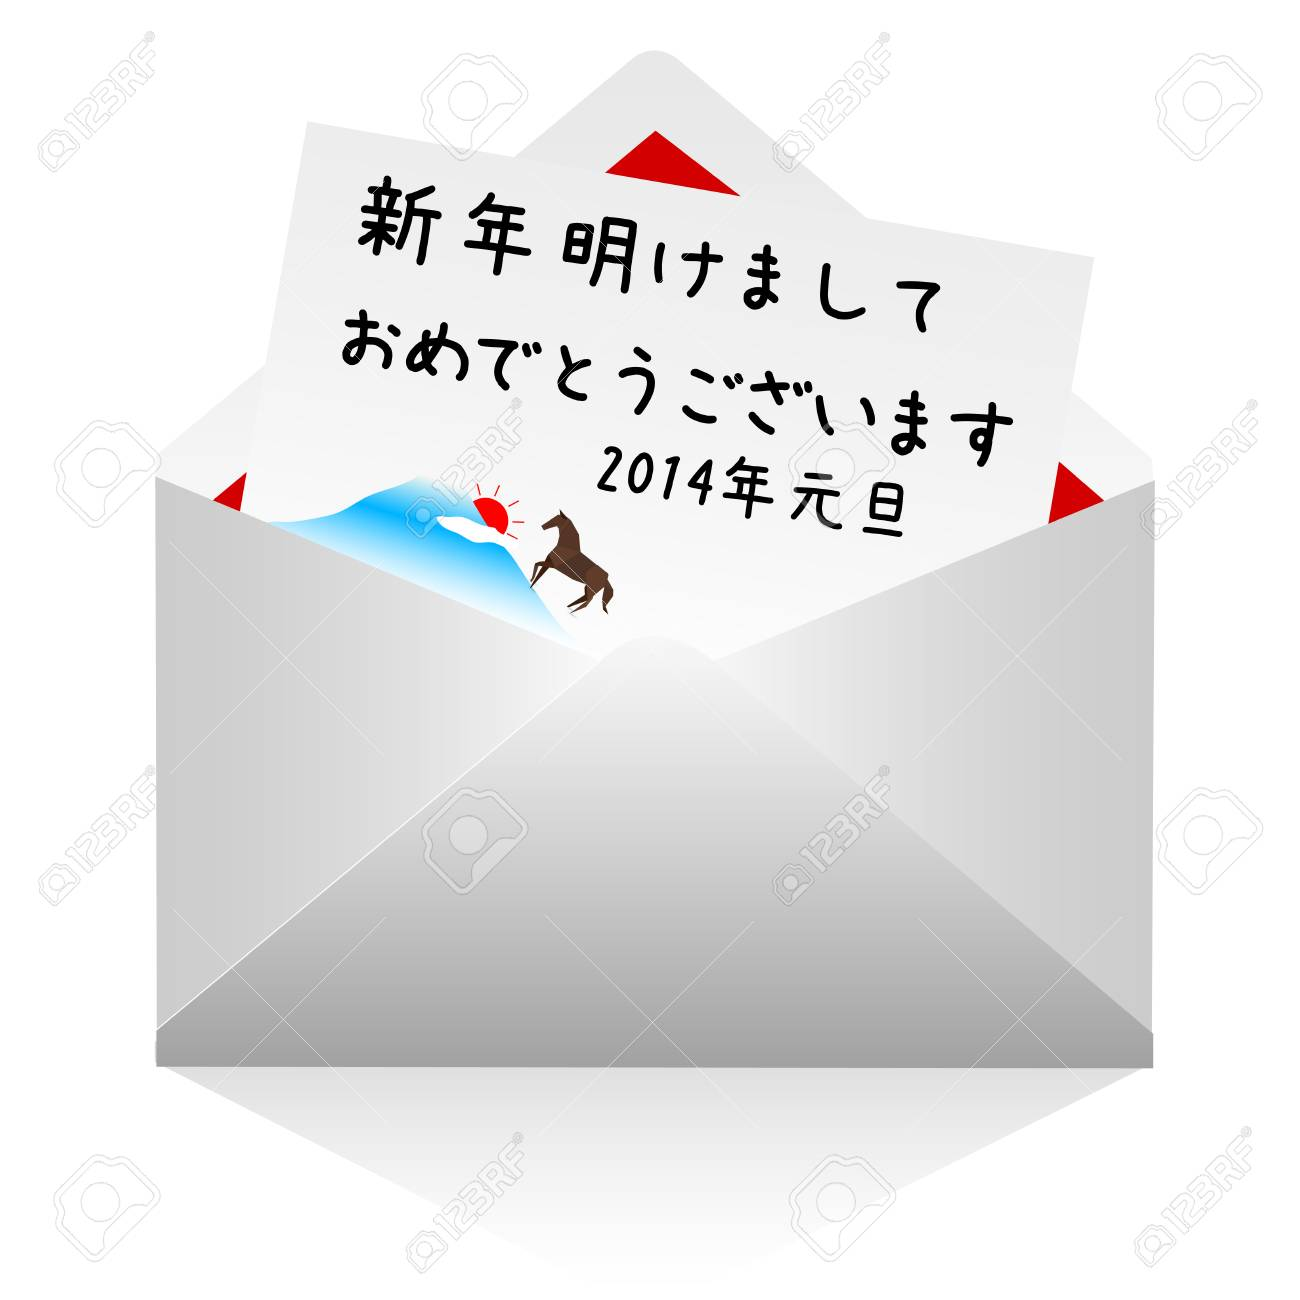 Horse fuji new year s greeting card background royalty free cliparts horse fuji new year s greeting card background stock vector 23062392 m4hsunfo